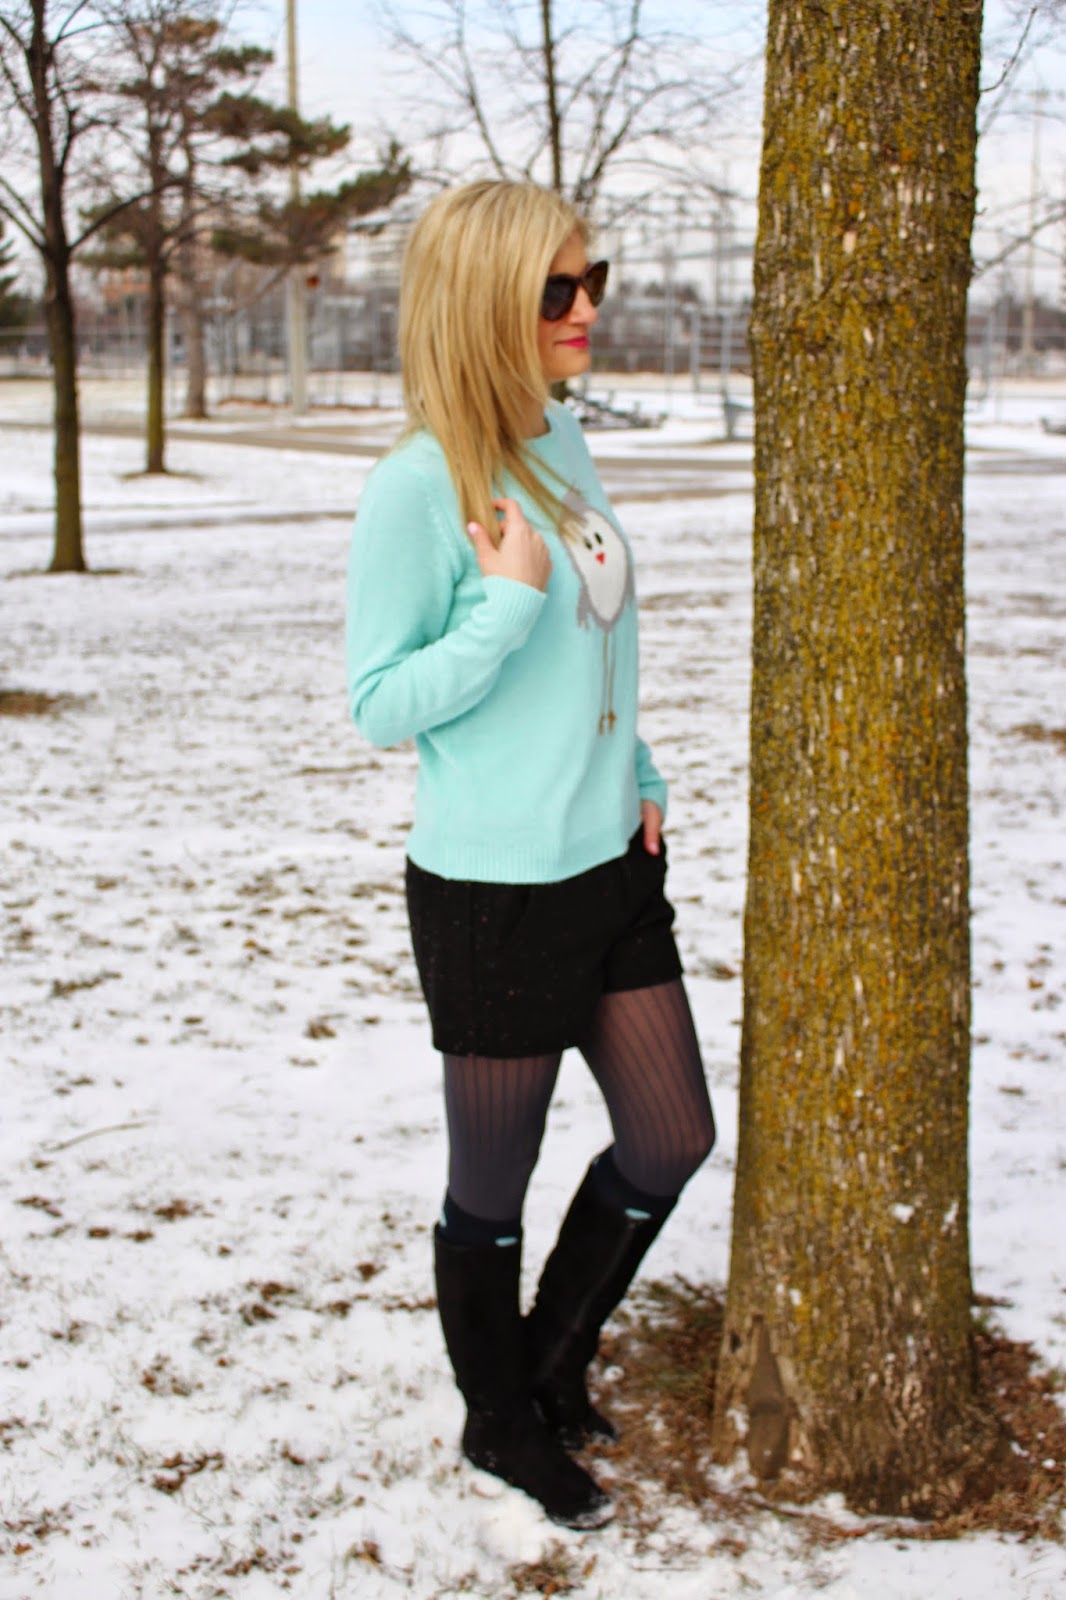 bijuleni - winter shorts with mint sweater